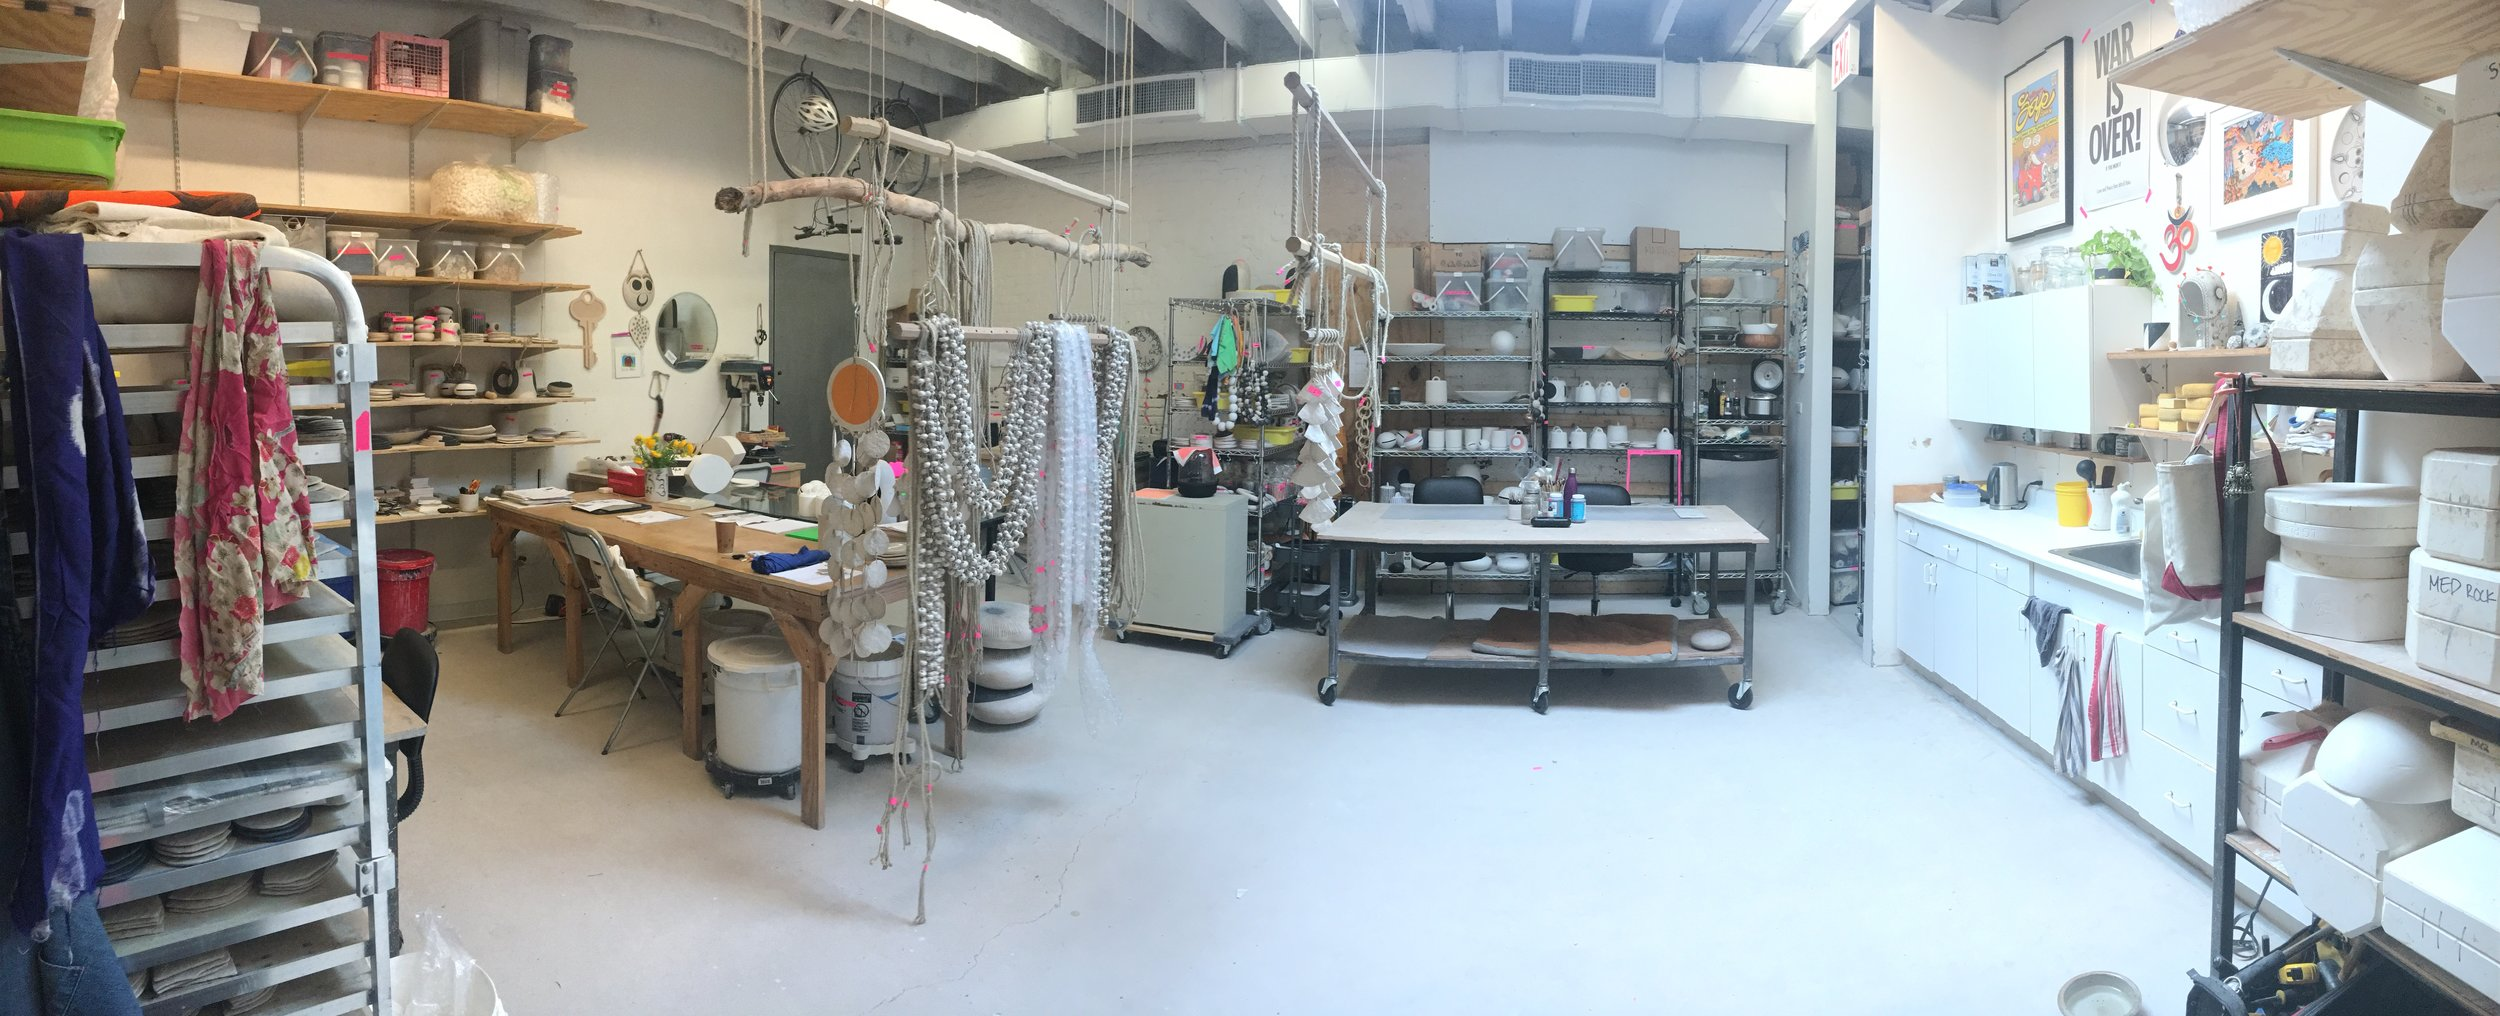 MQuan Studio- Panoramic Photo MQuan Studio.jpg